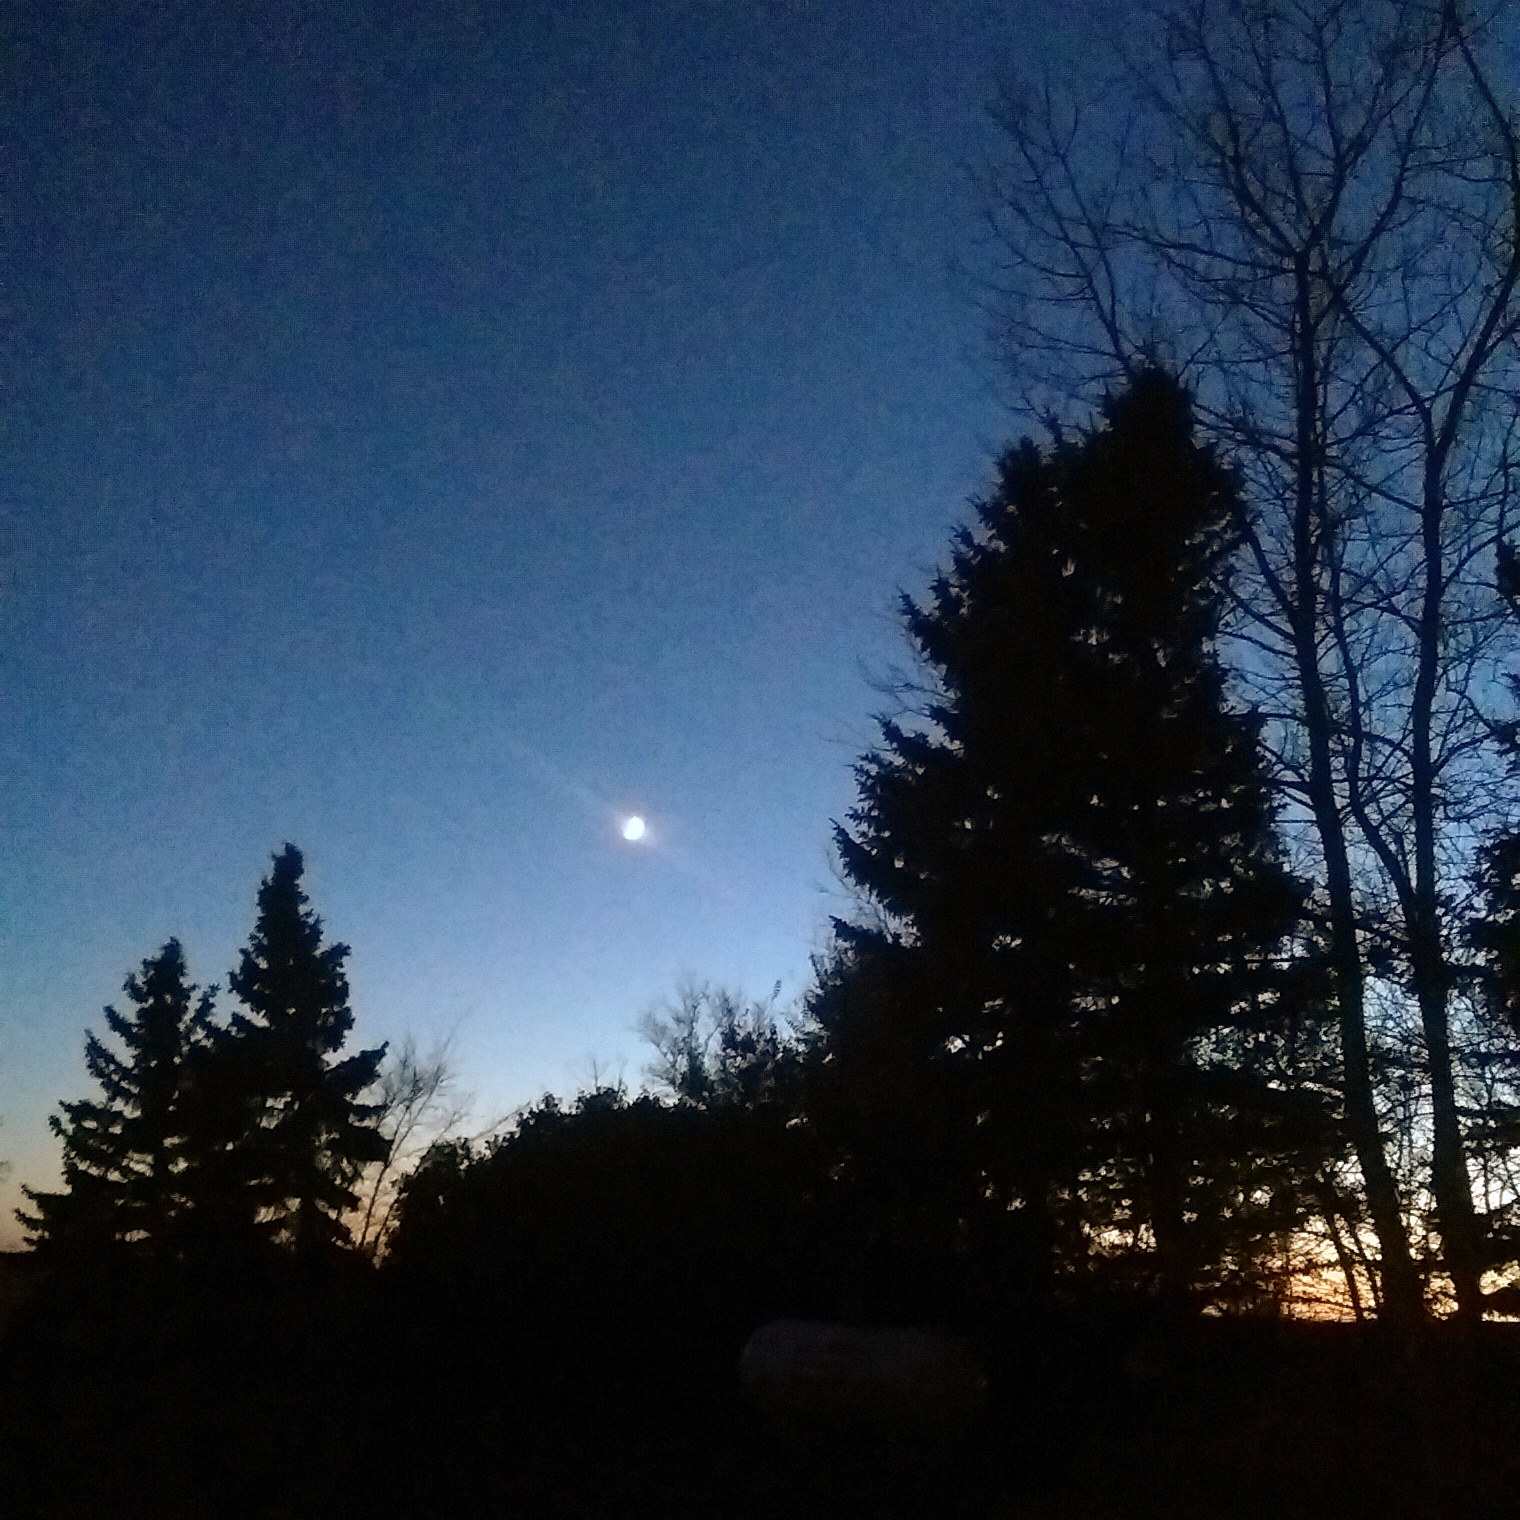 Full moon picture from my in-laws farm in October, near Watrous, SK